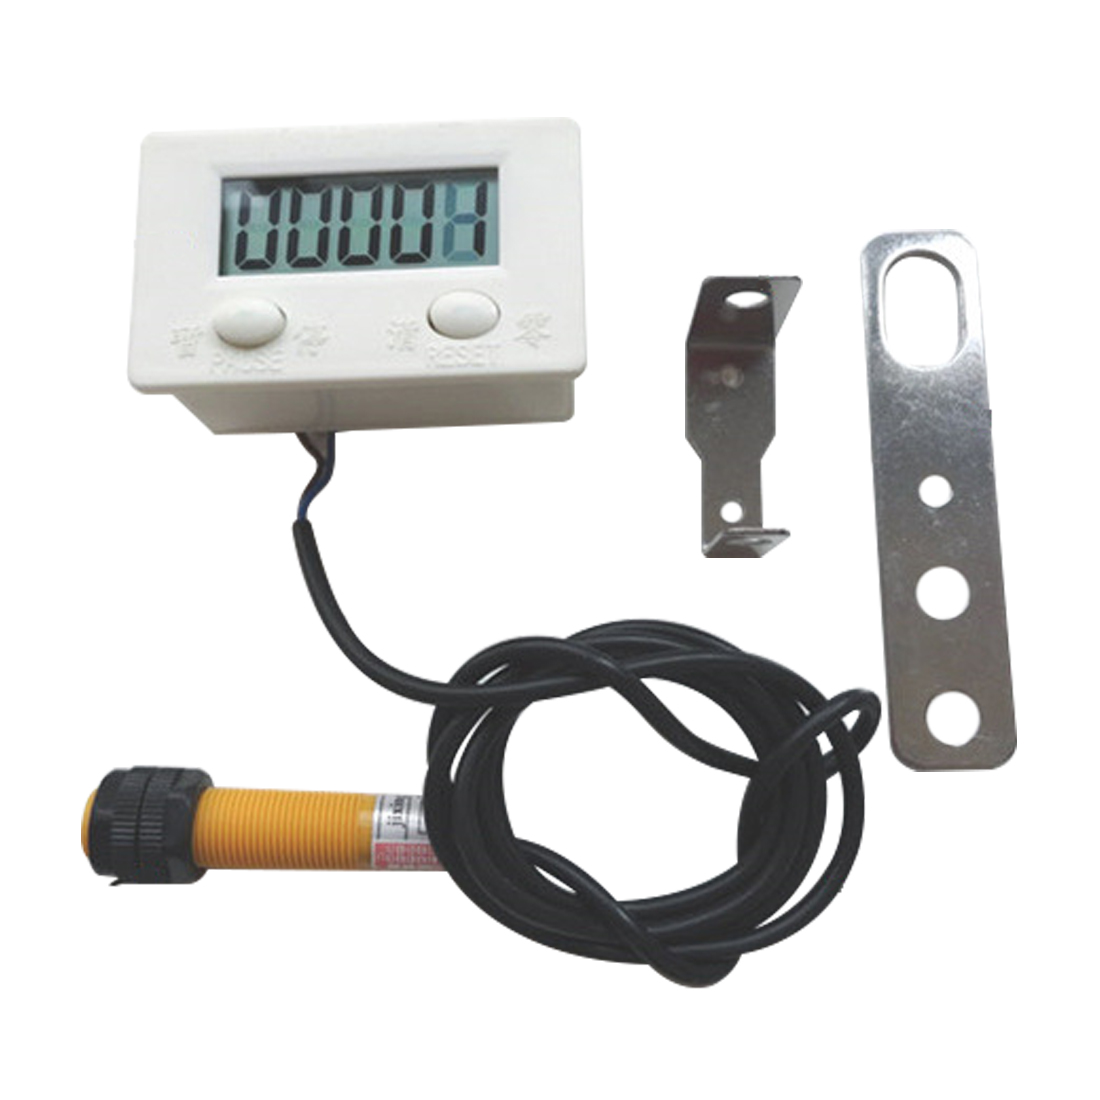 New P11-5A LCD Digital Display Electronic Counter Punch Magnetic Induction Proximity Switch Reciprocating Rotary Counter